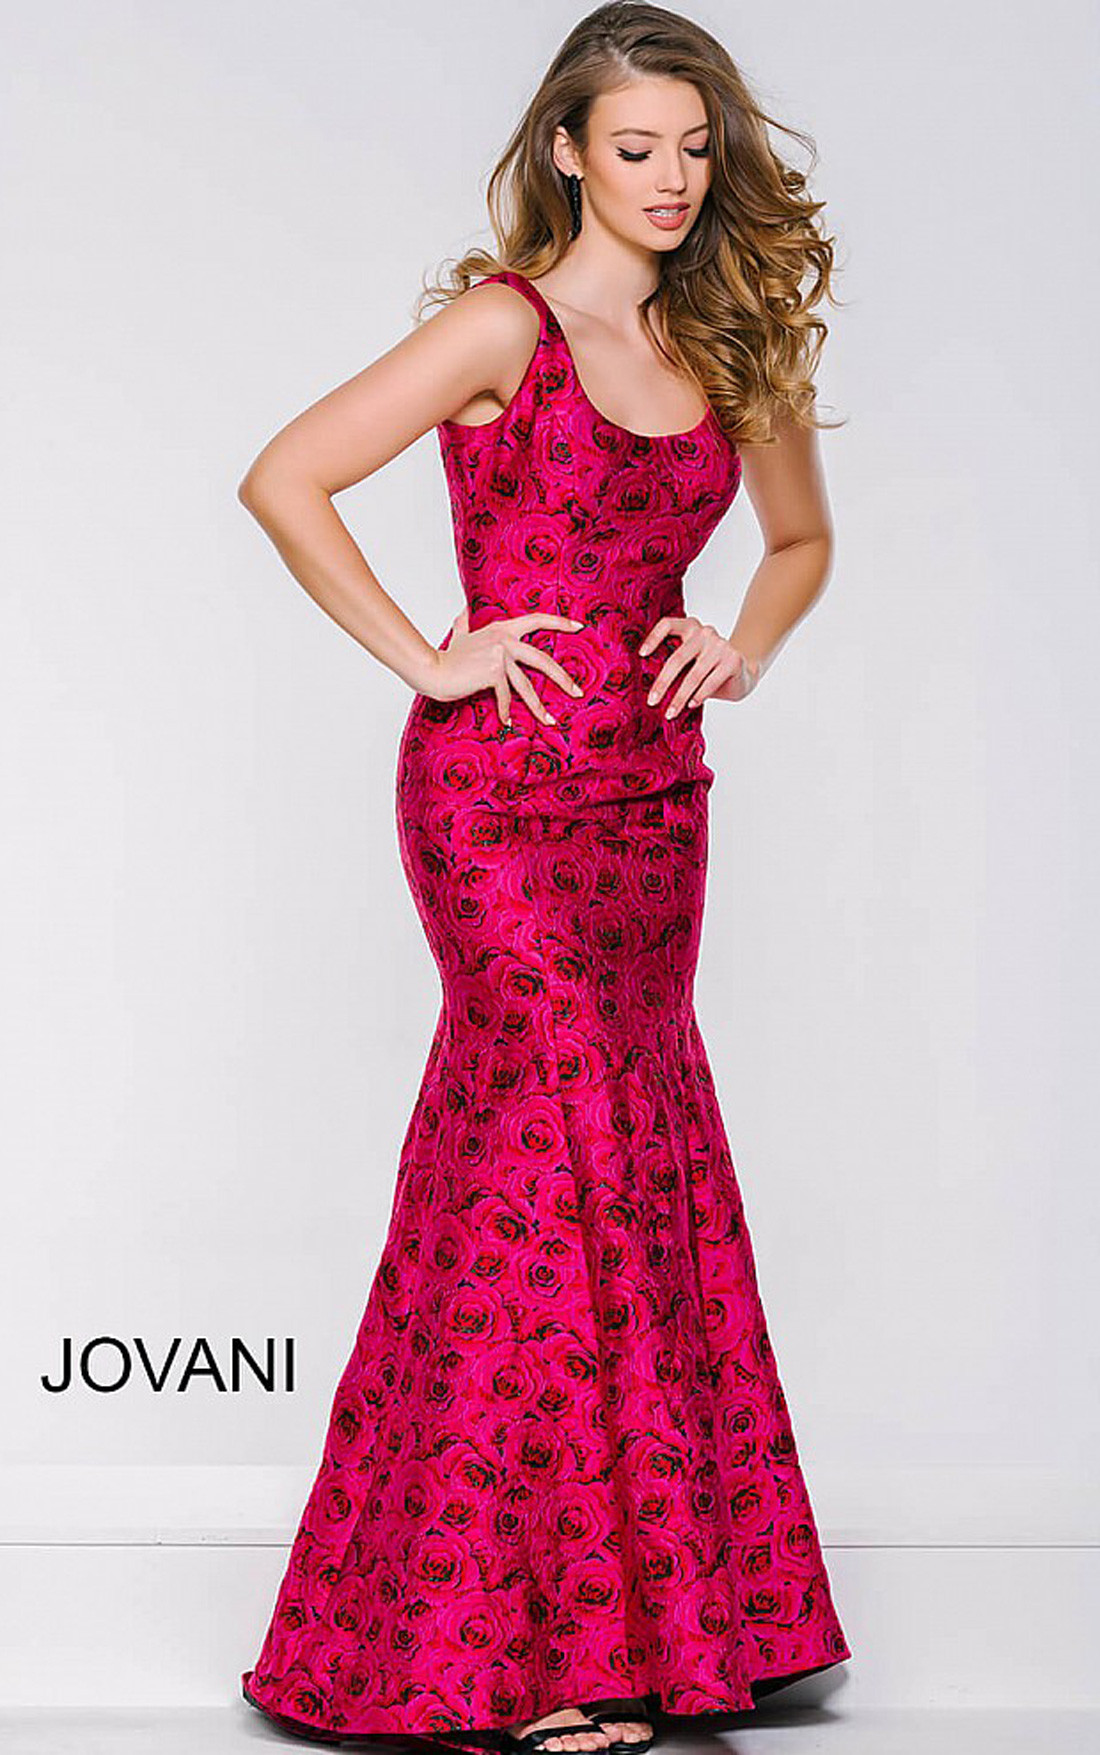 Jovani Dresses | Womens Pink Roses Sleeveless Trumpet Dress ...